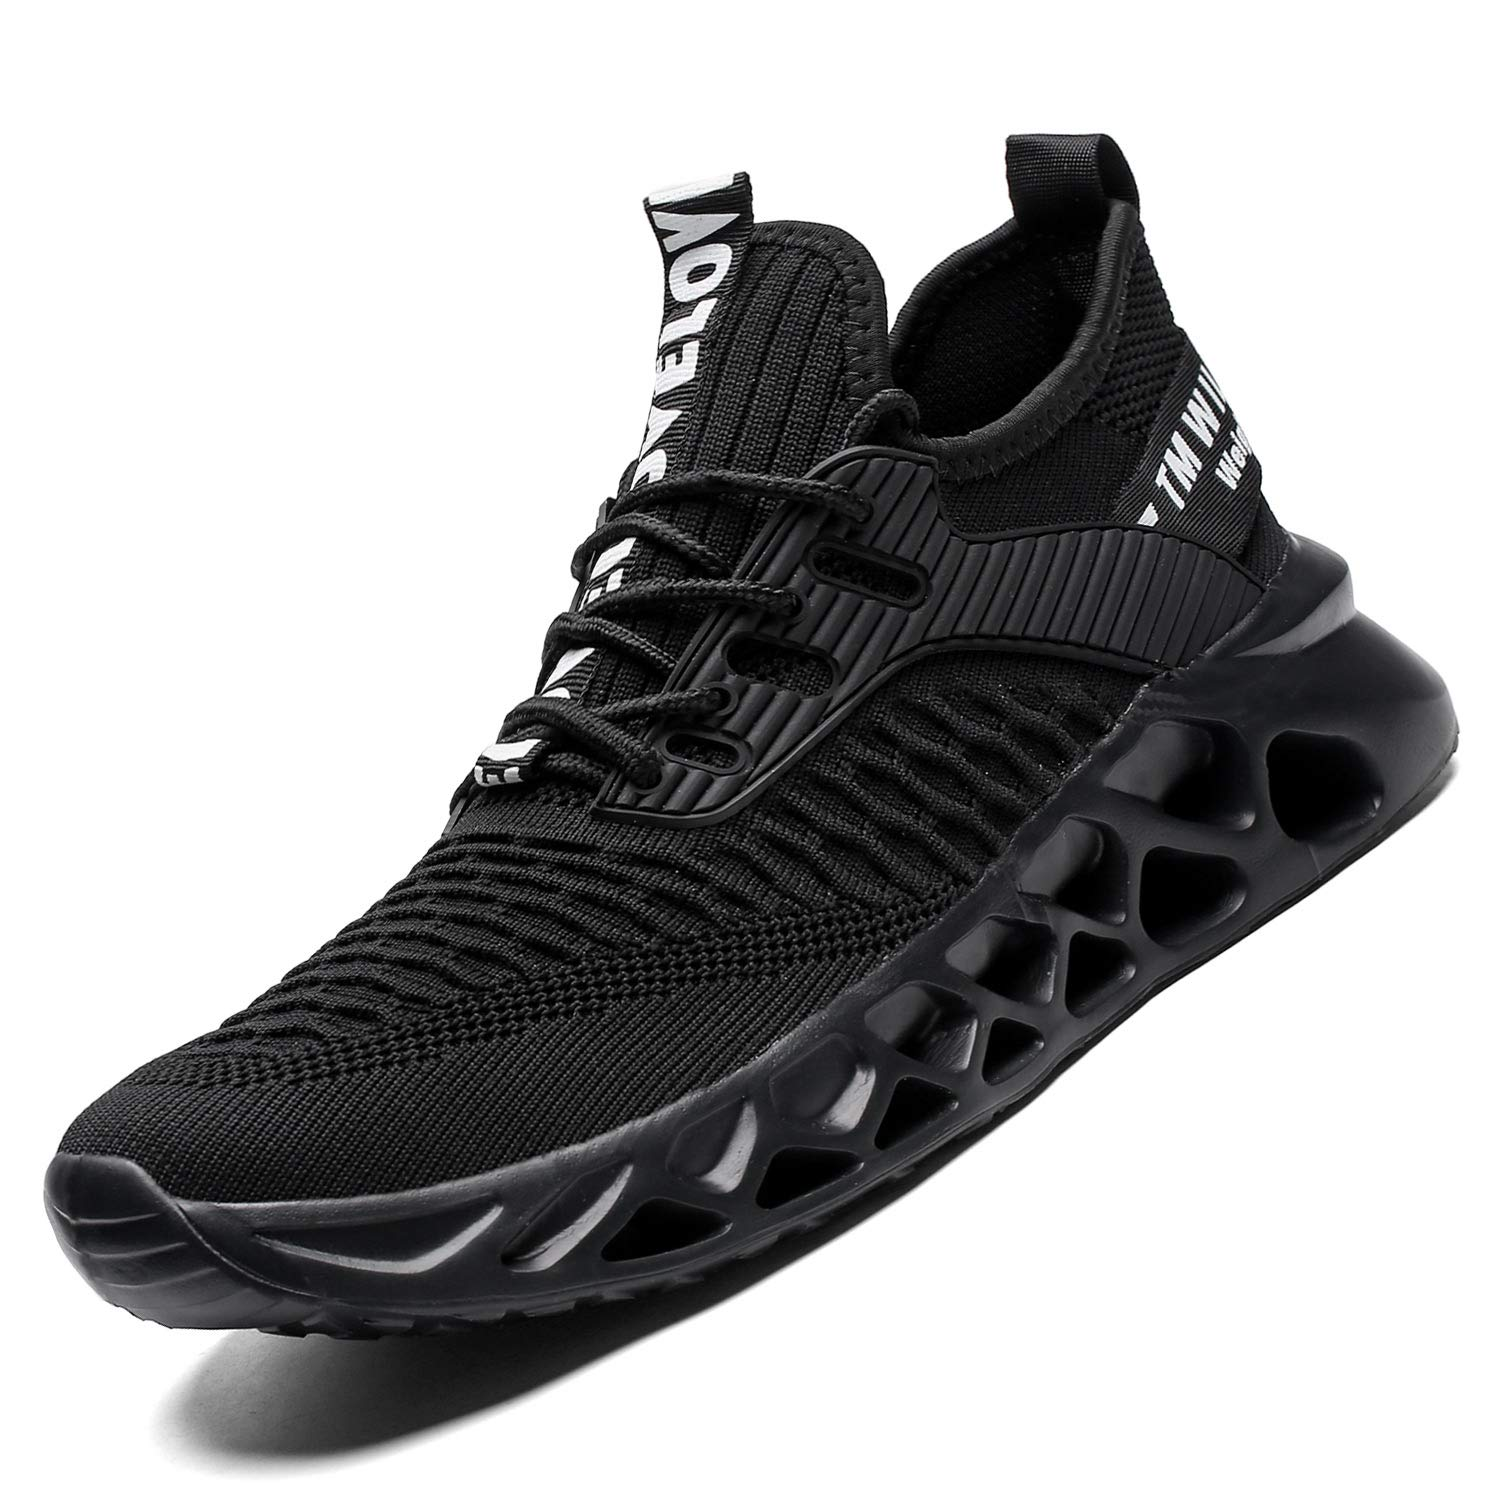 Kapsen Mens Running Shoes Mesh Breathable Sneakers Lightweight Fashion Athletic Gym Shoes Casual Tennis Sport Shoes for Workout Walking (11, 1-Full Black) by Kapsen